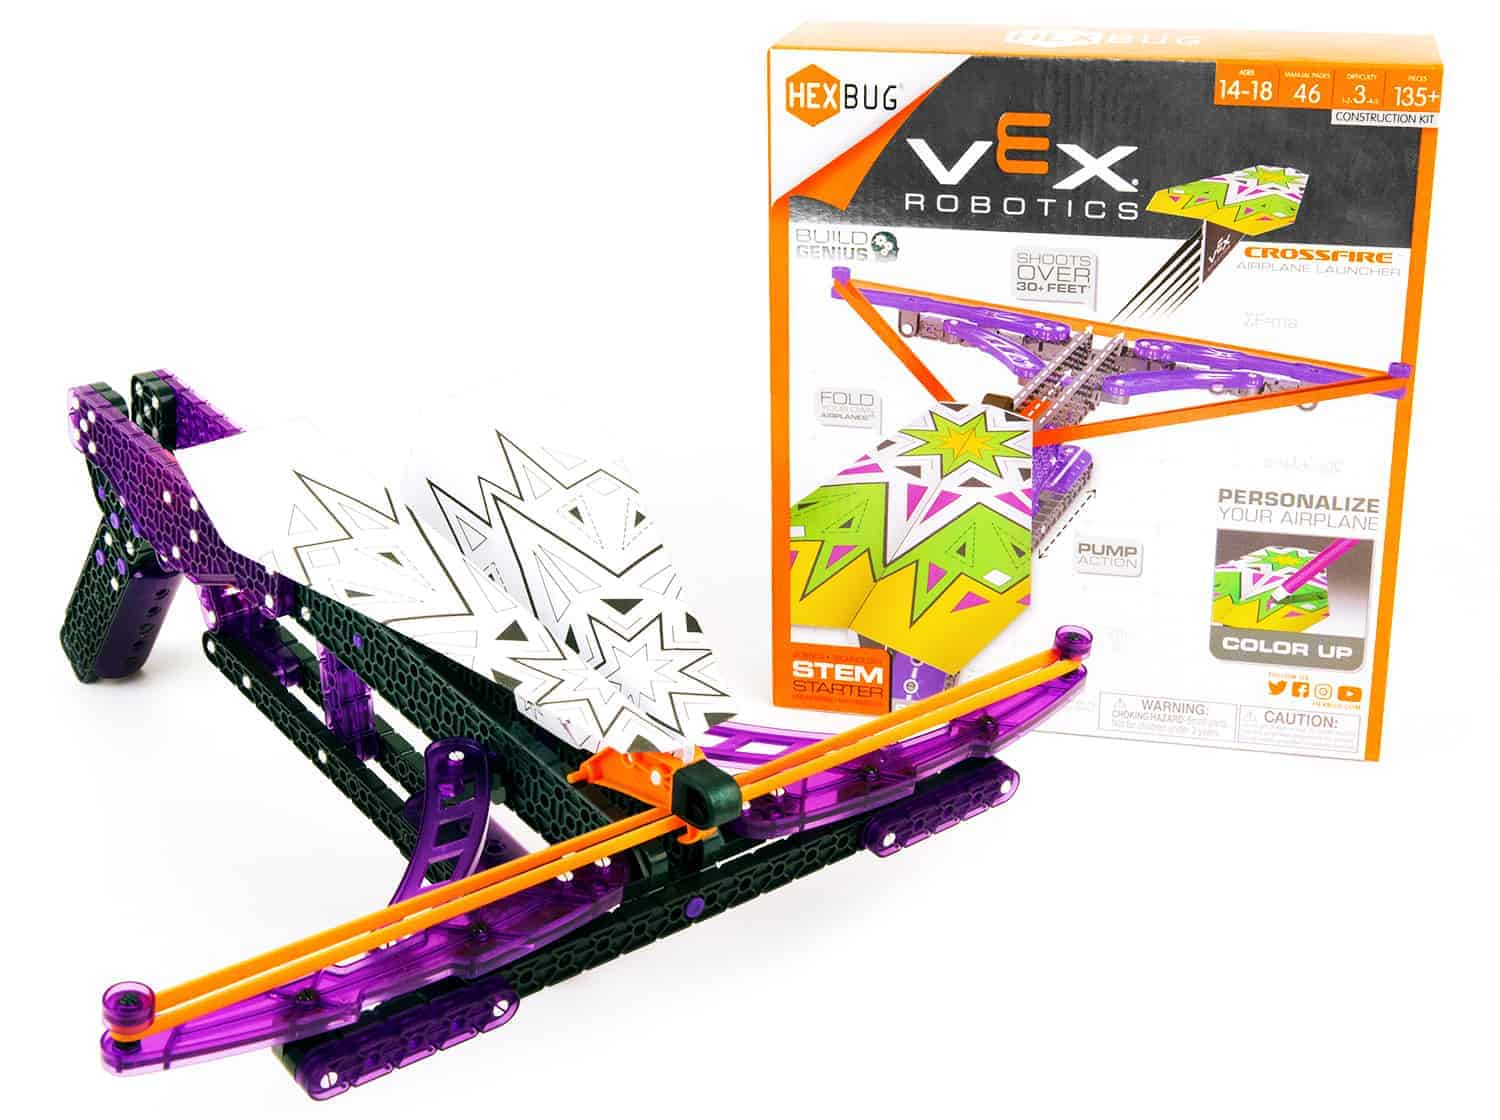 VEX Robotics Crossfire Airplane Launcher HEXBUG